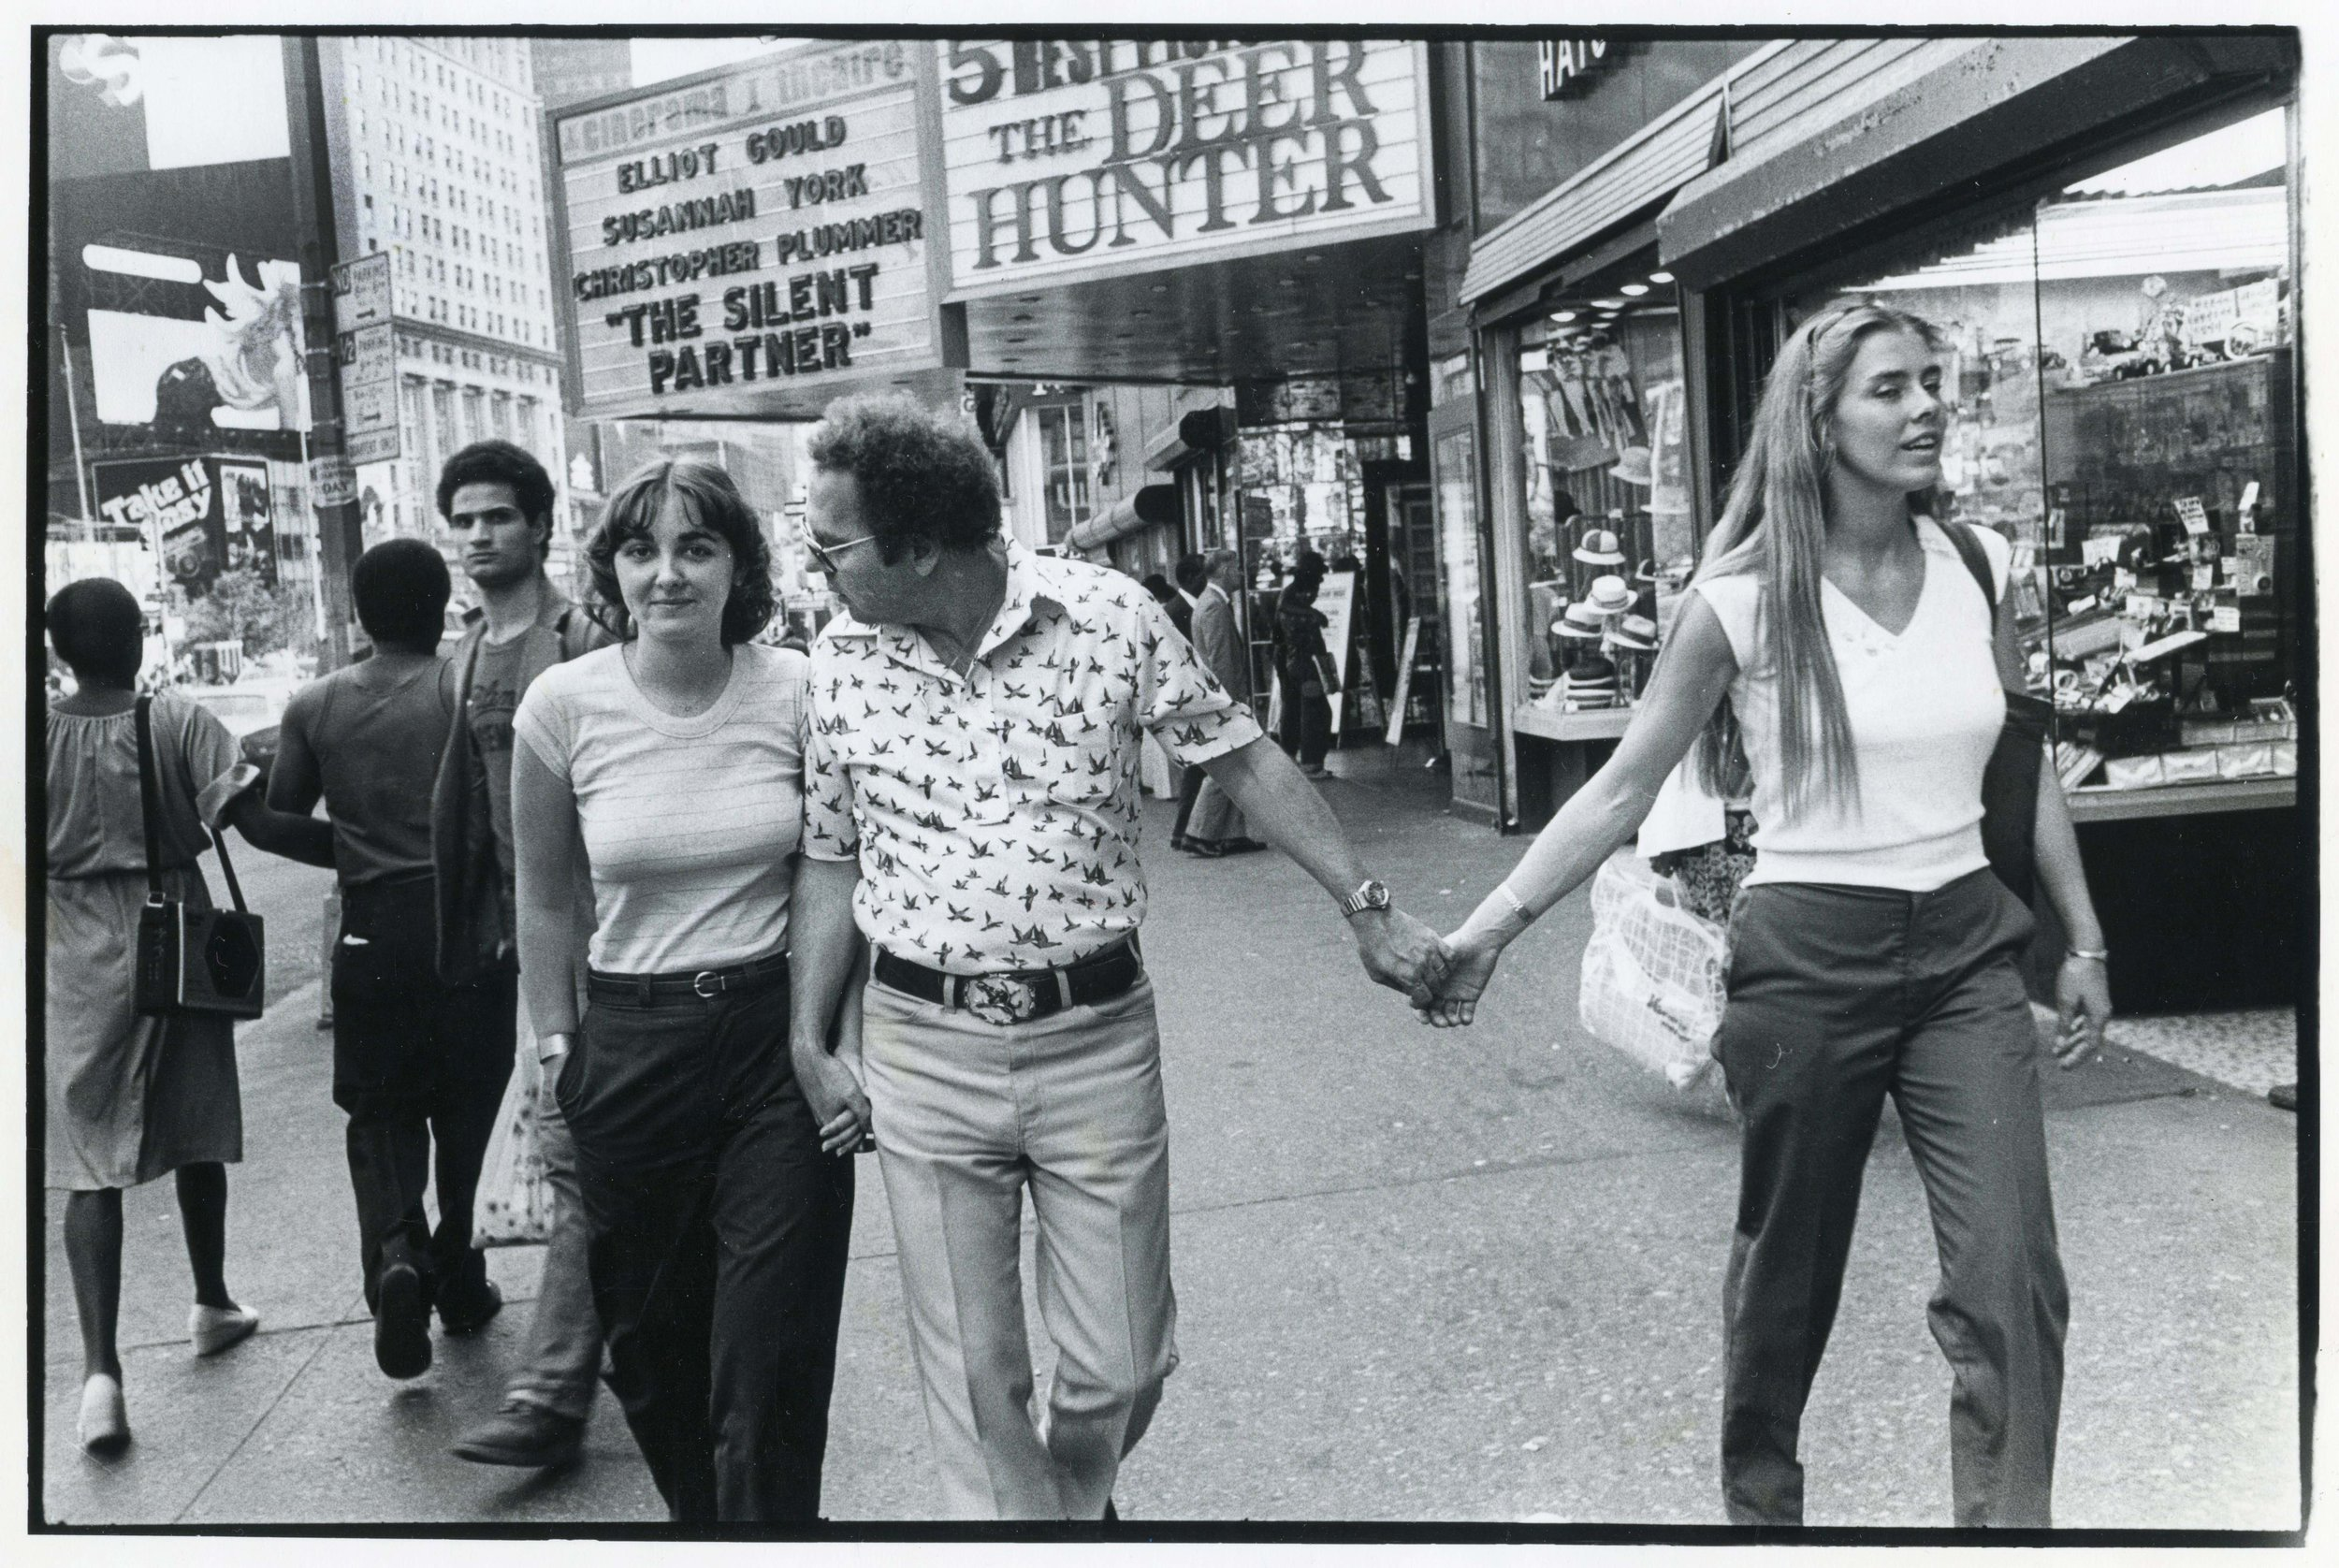 Silent Partner, Times Square 1979